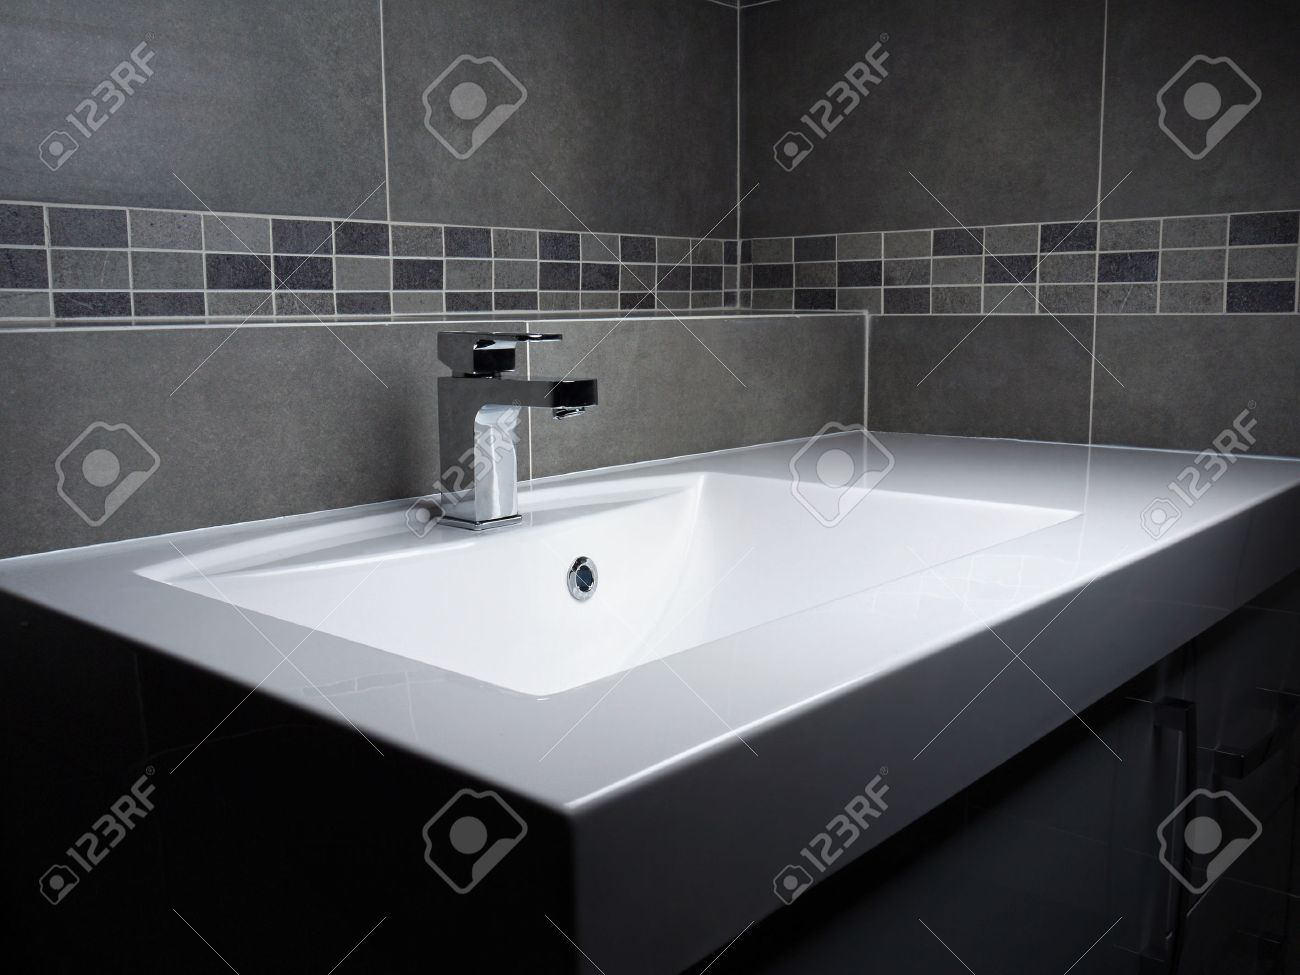 Exceptionnel Modern Bathroom Washbasin With Chrome Faucet And Gray Tiling Stock Photo    26054019